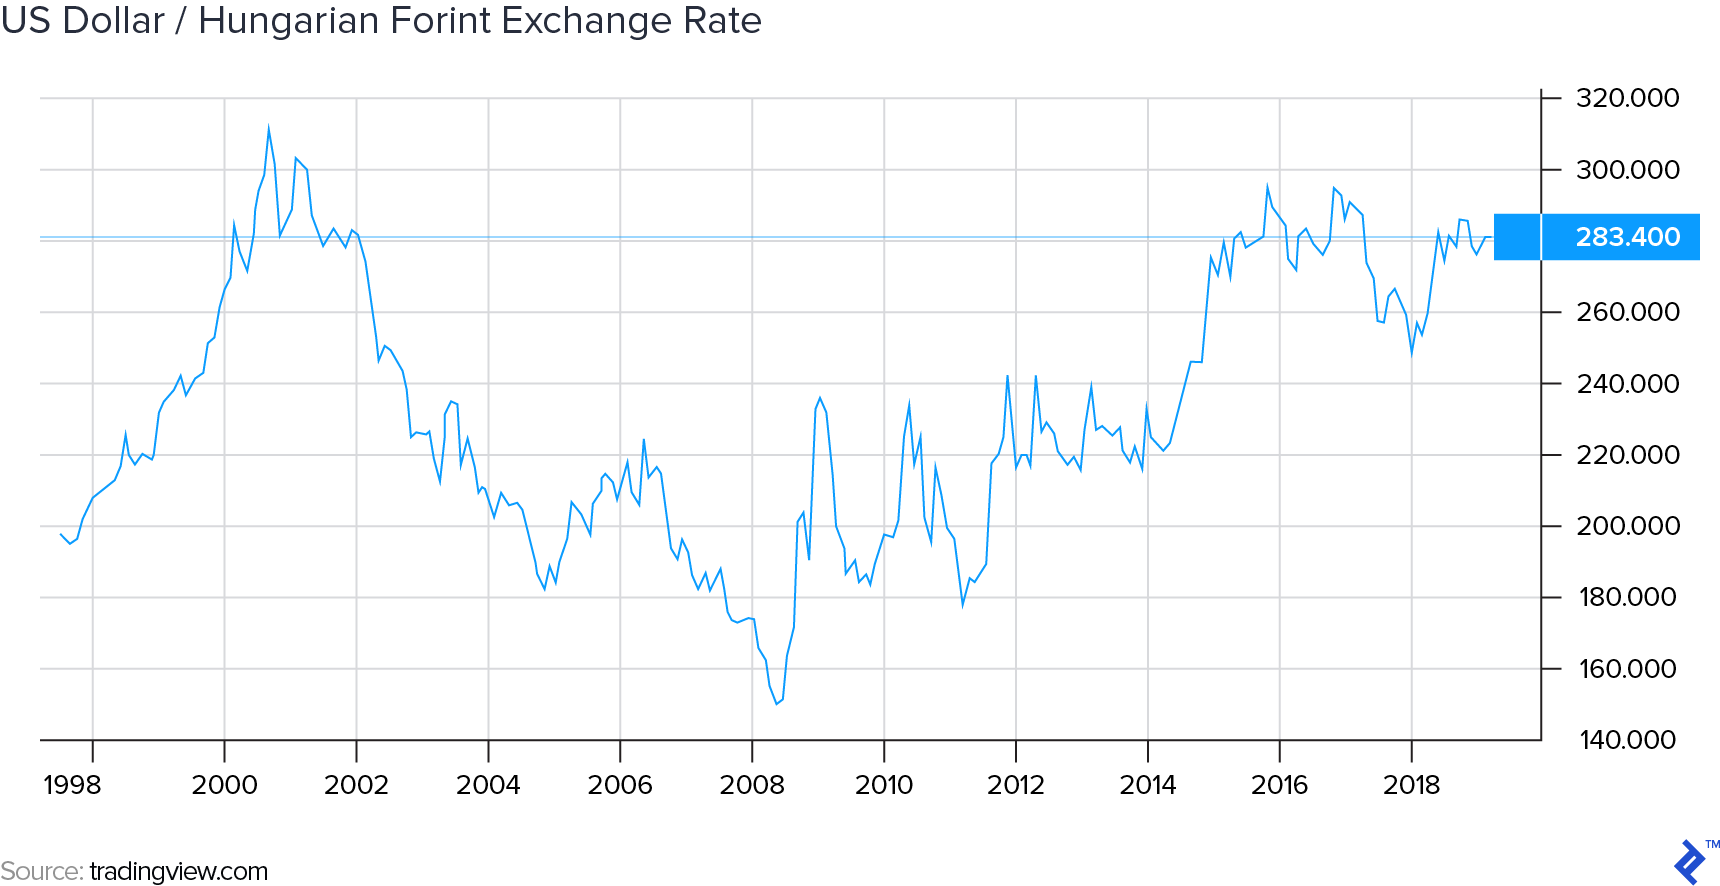 US Dollar/Hungarian Forint Exchange Rate